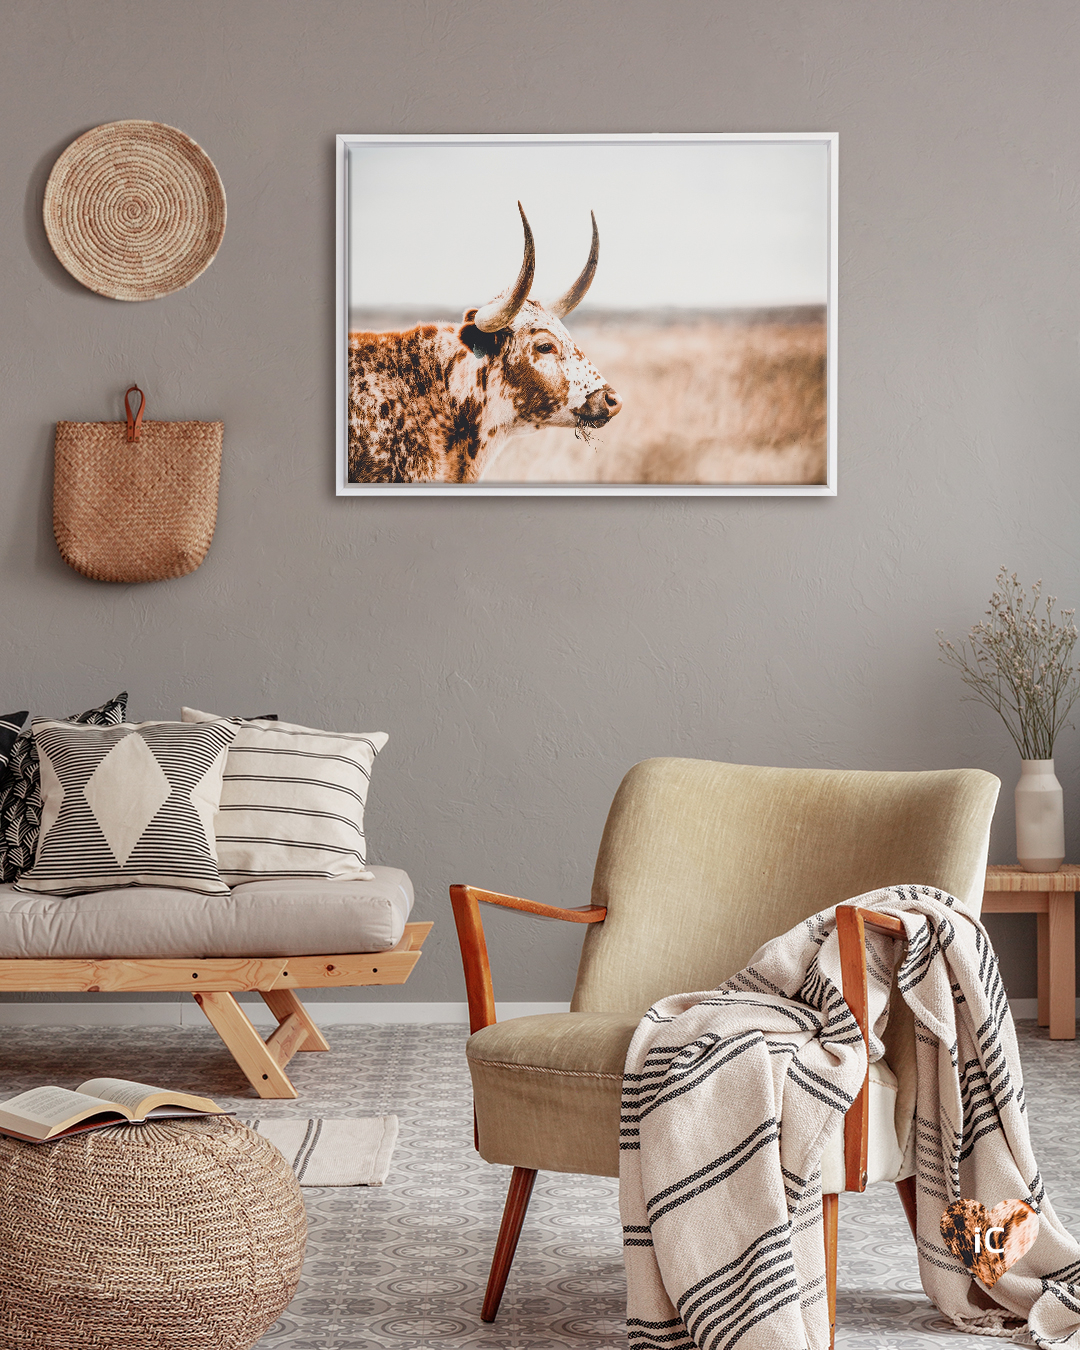 Photo of profile of a brown longhorn cow framed in white on a gray wall in room with wood furniture and white and beige accents